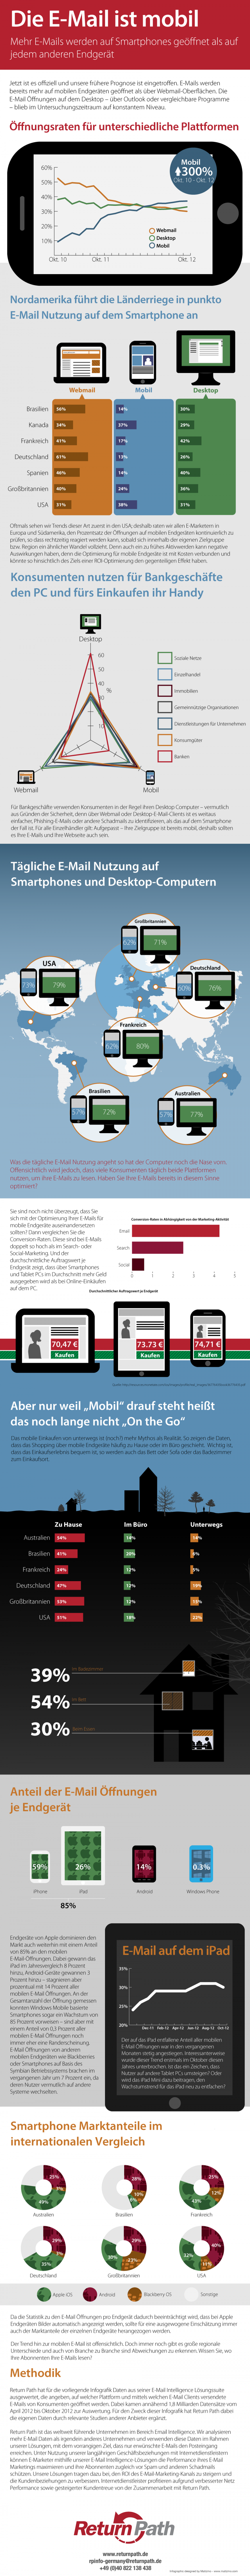 Die E-Mail ist mobil Infographic